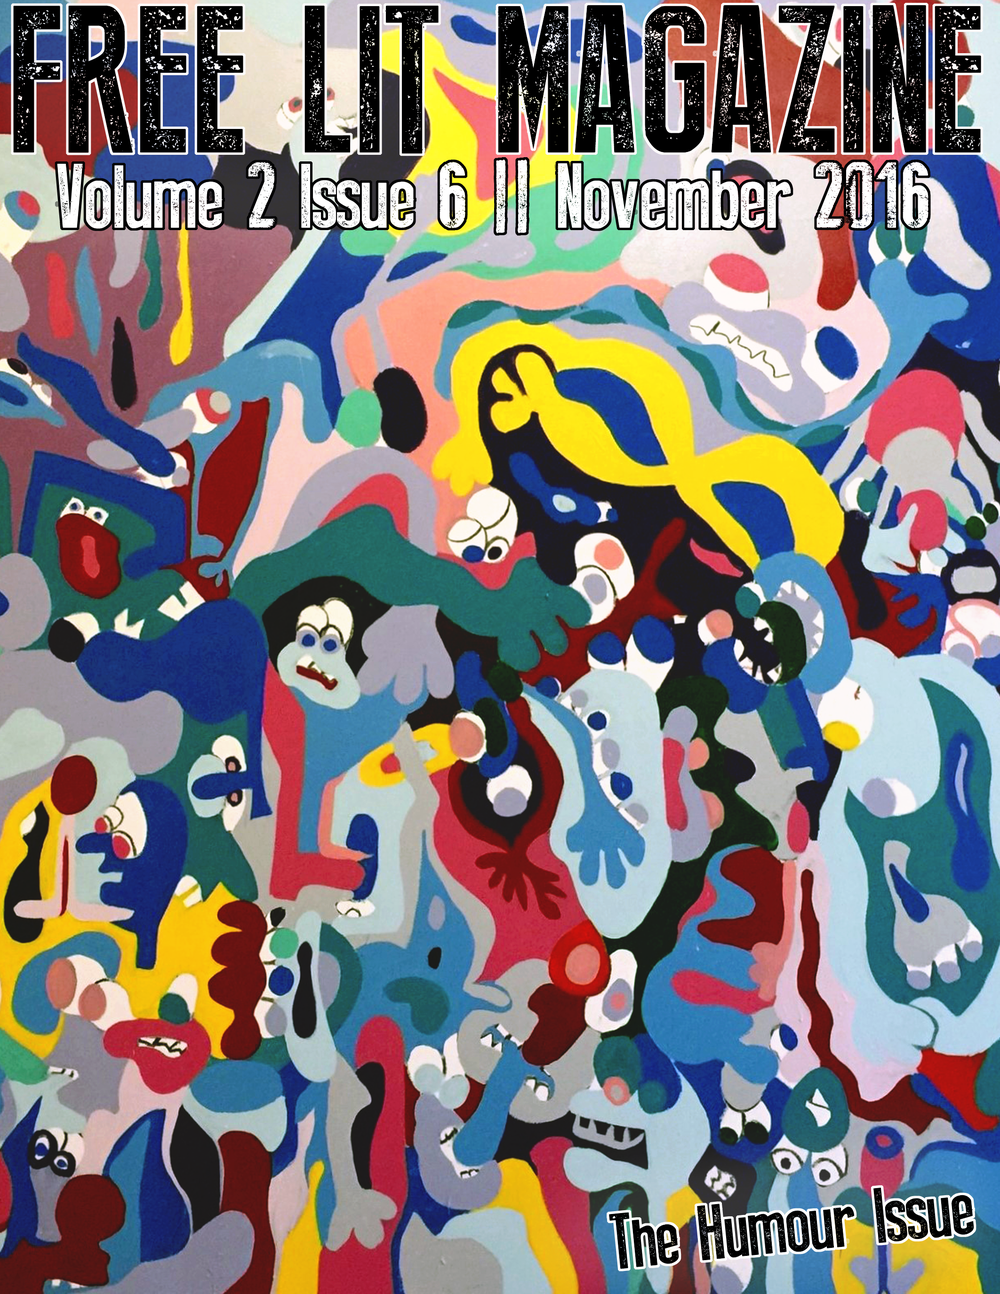 volume 2 issue 6 (art by barry johnson)